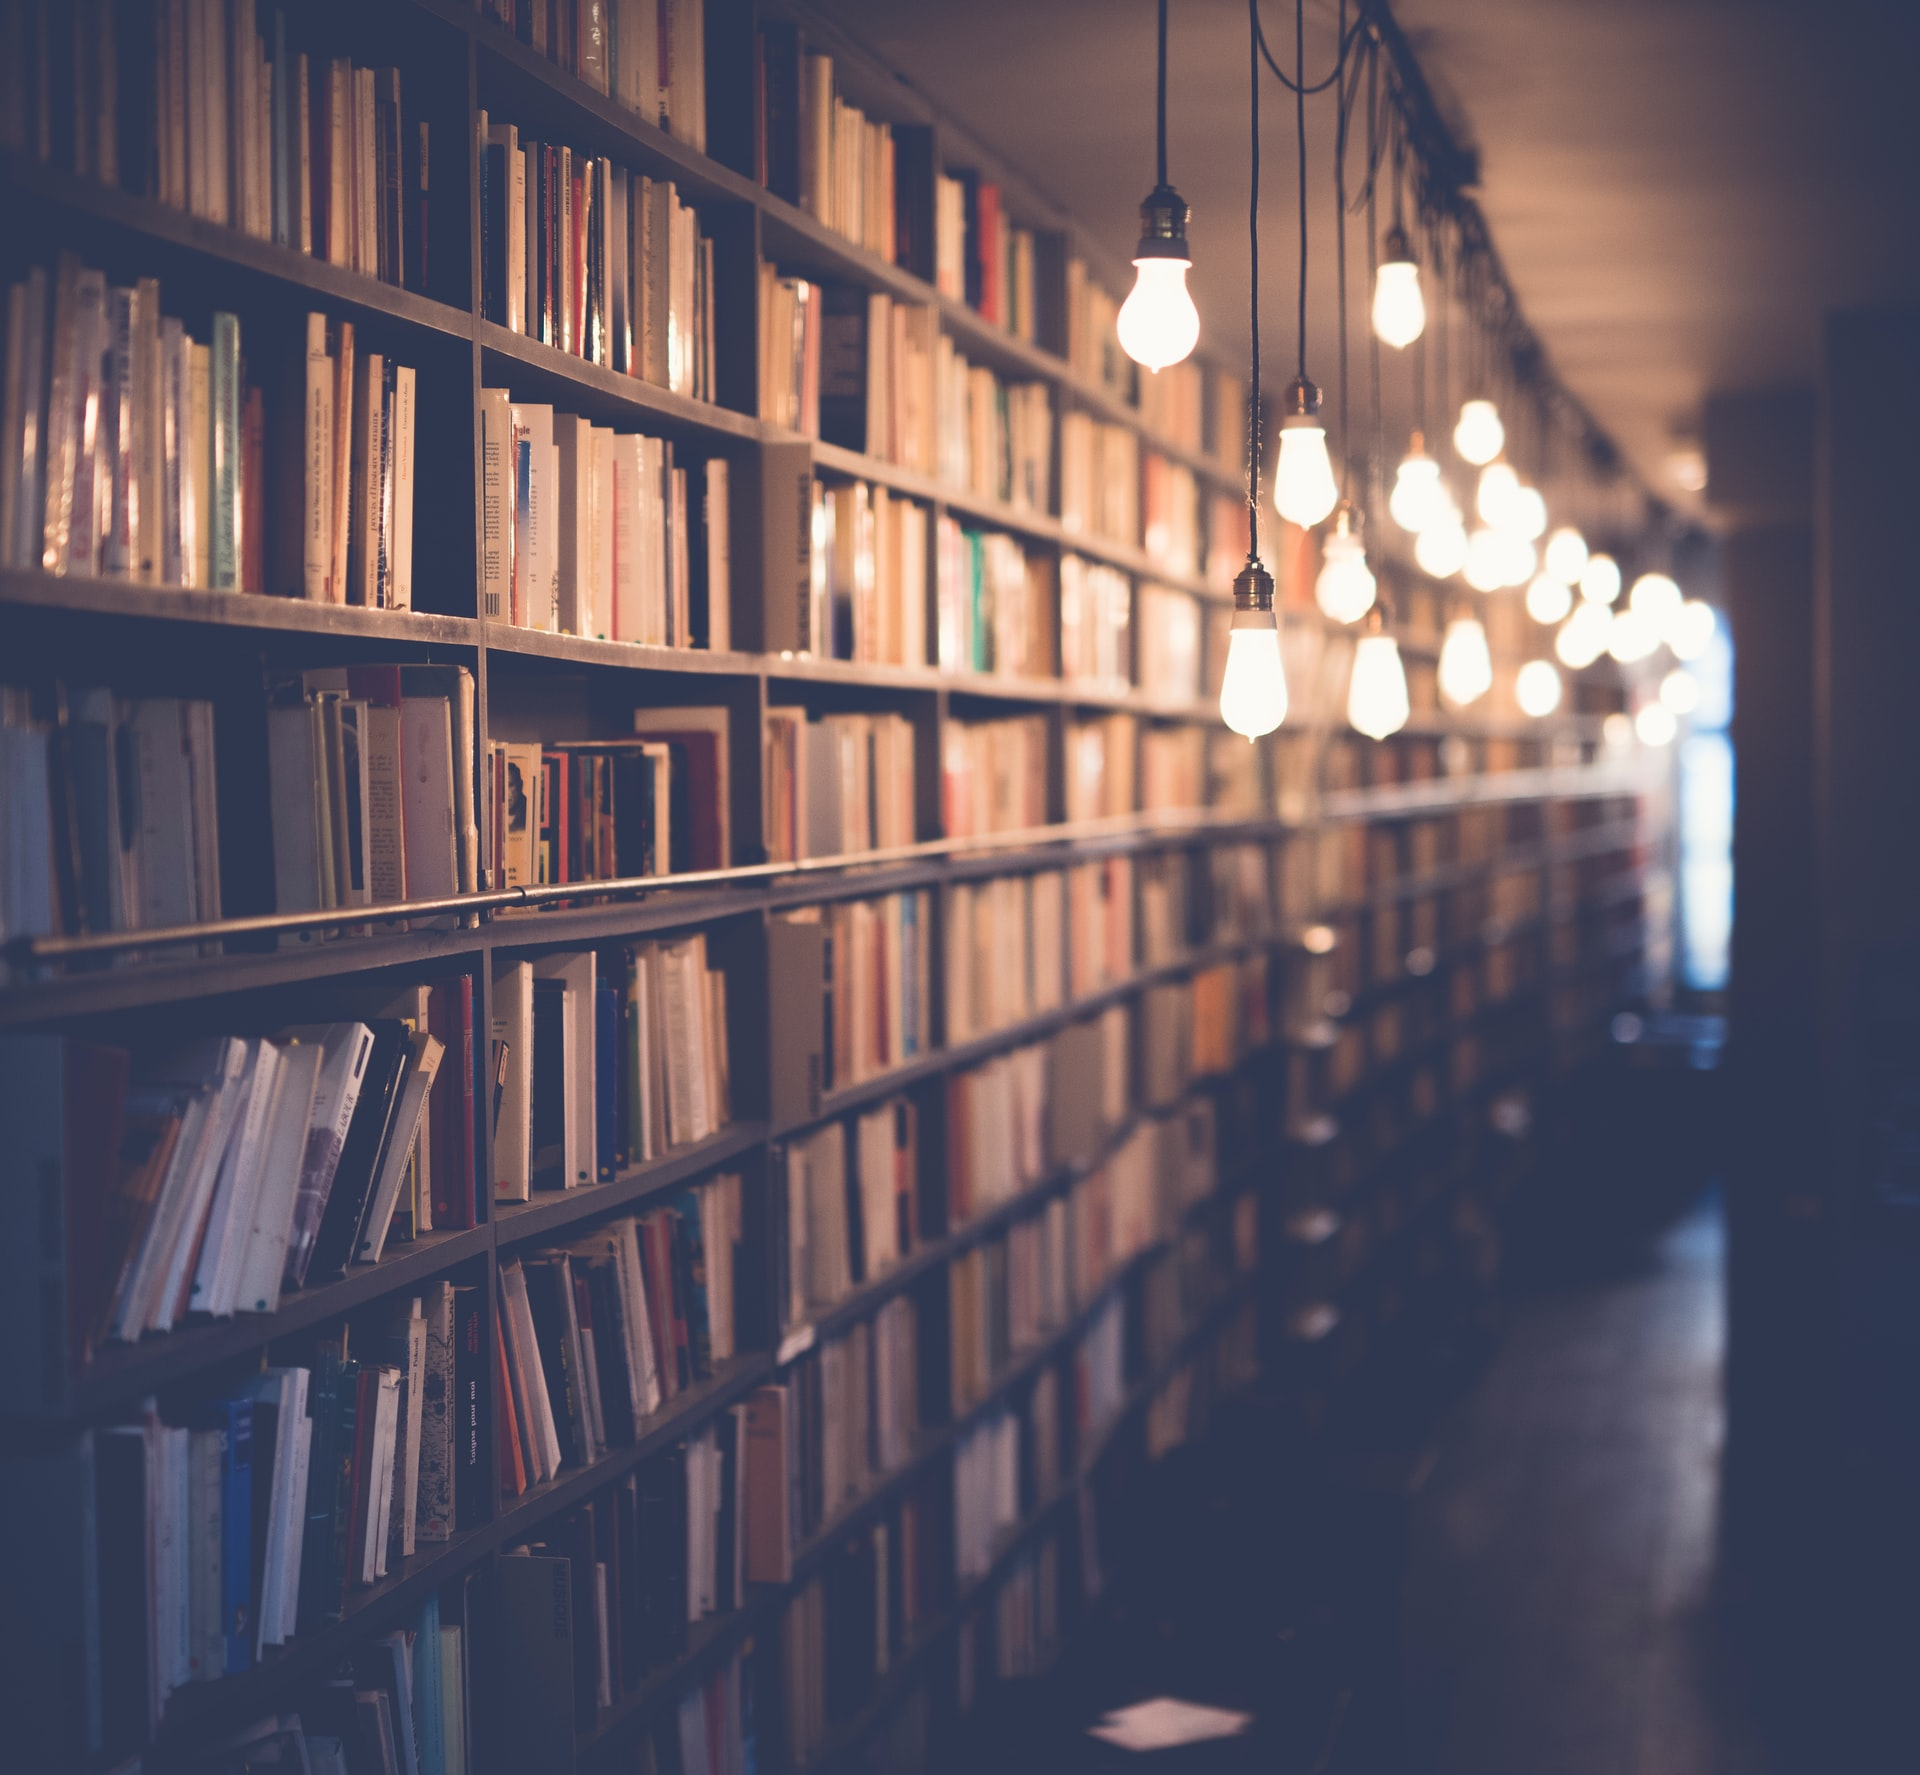 Library with hanging light bulbs. Photo courtesy of Janko Ferlič on Unsplash.